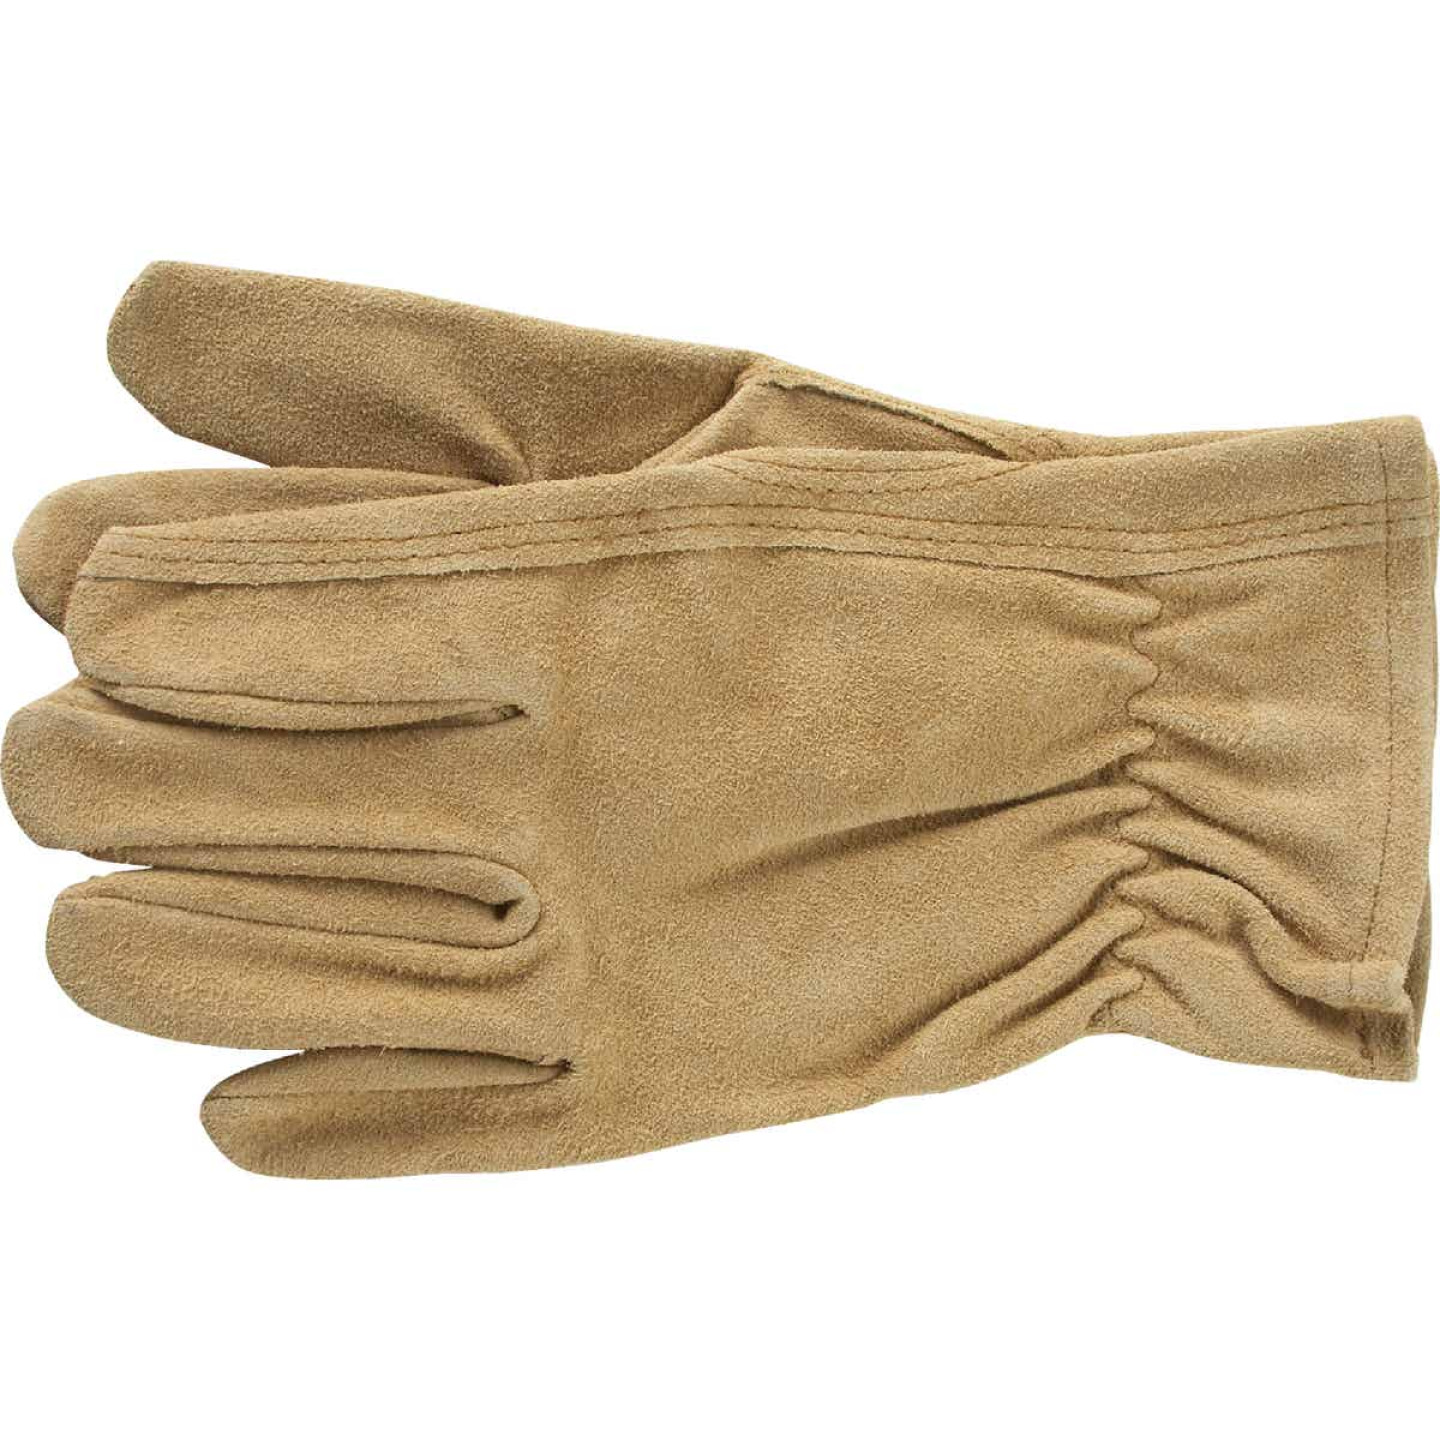 Do it Best Men's Large Suede Leather Work Glove Image 1